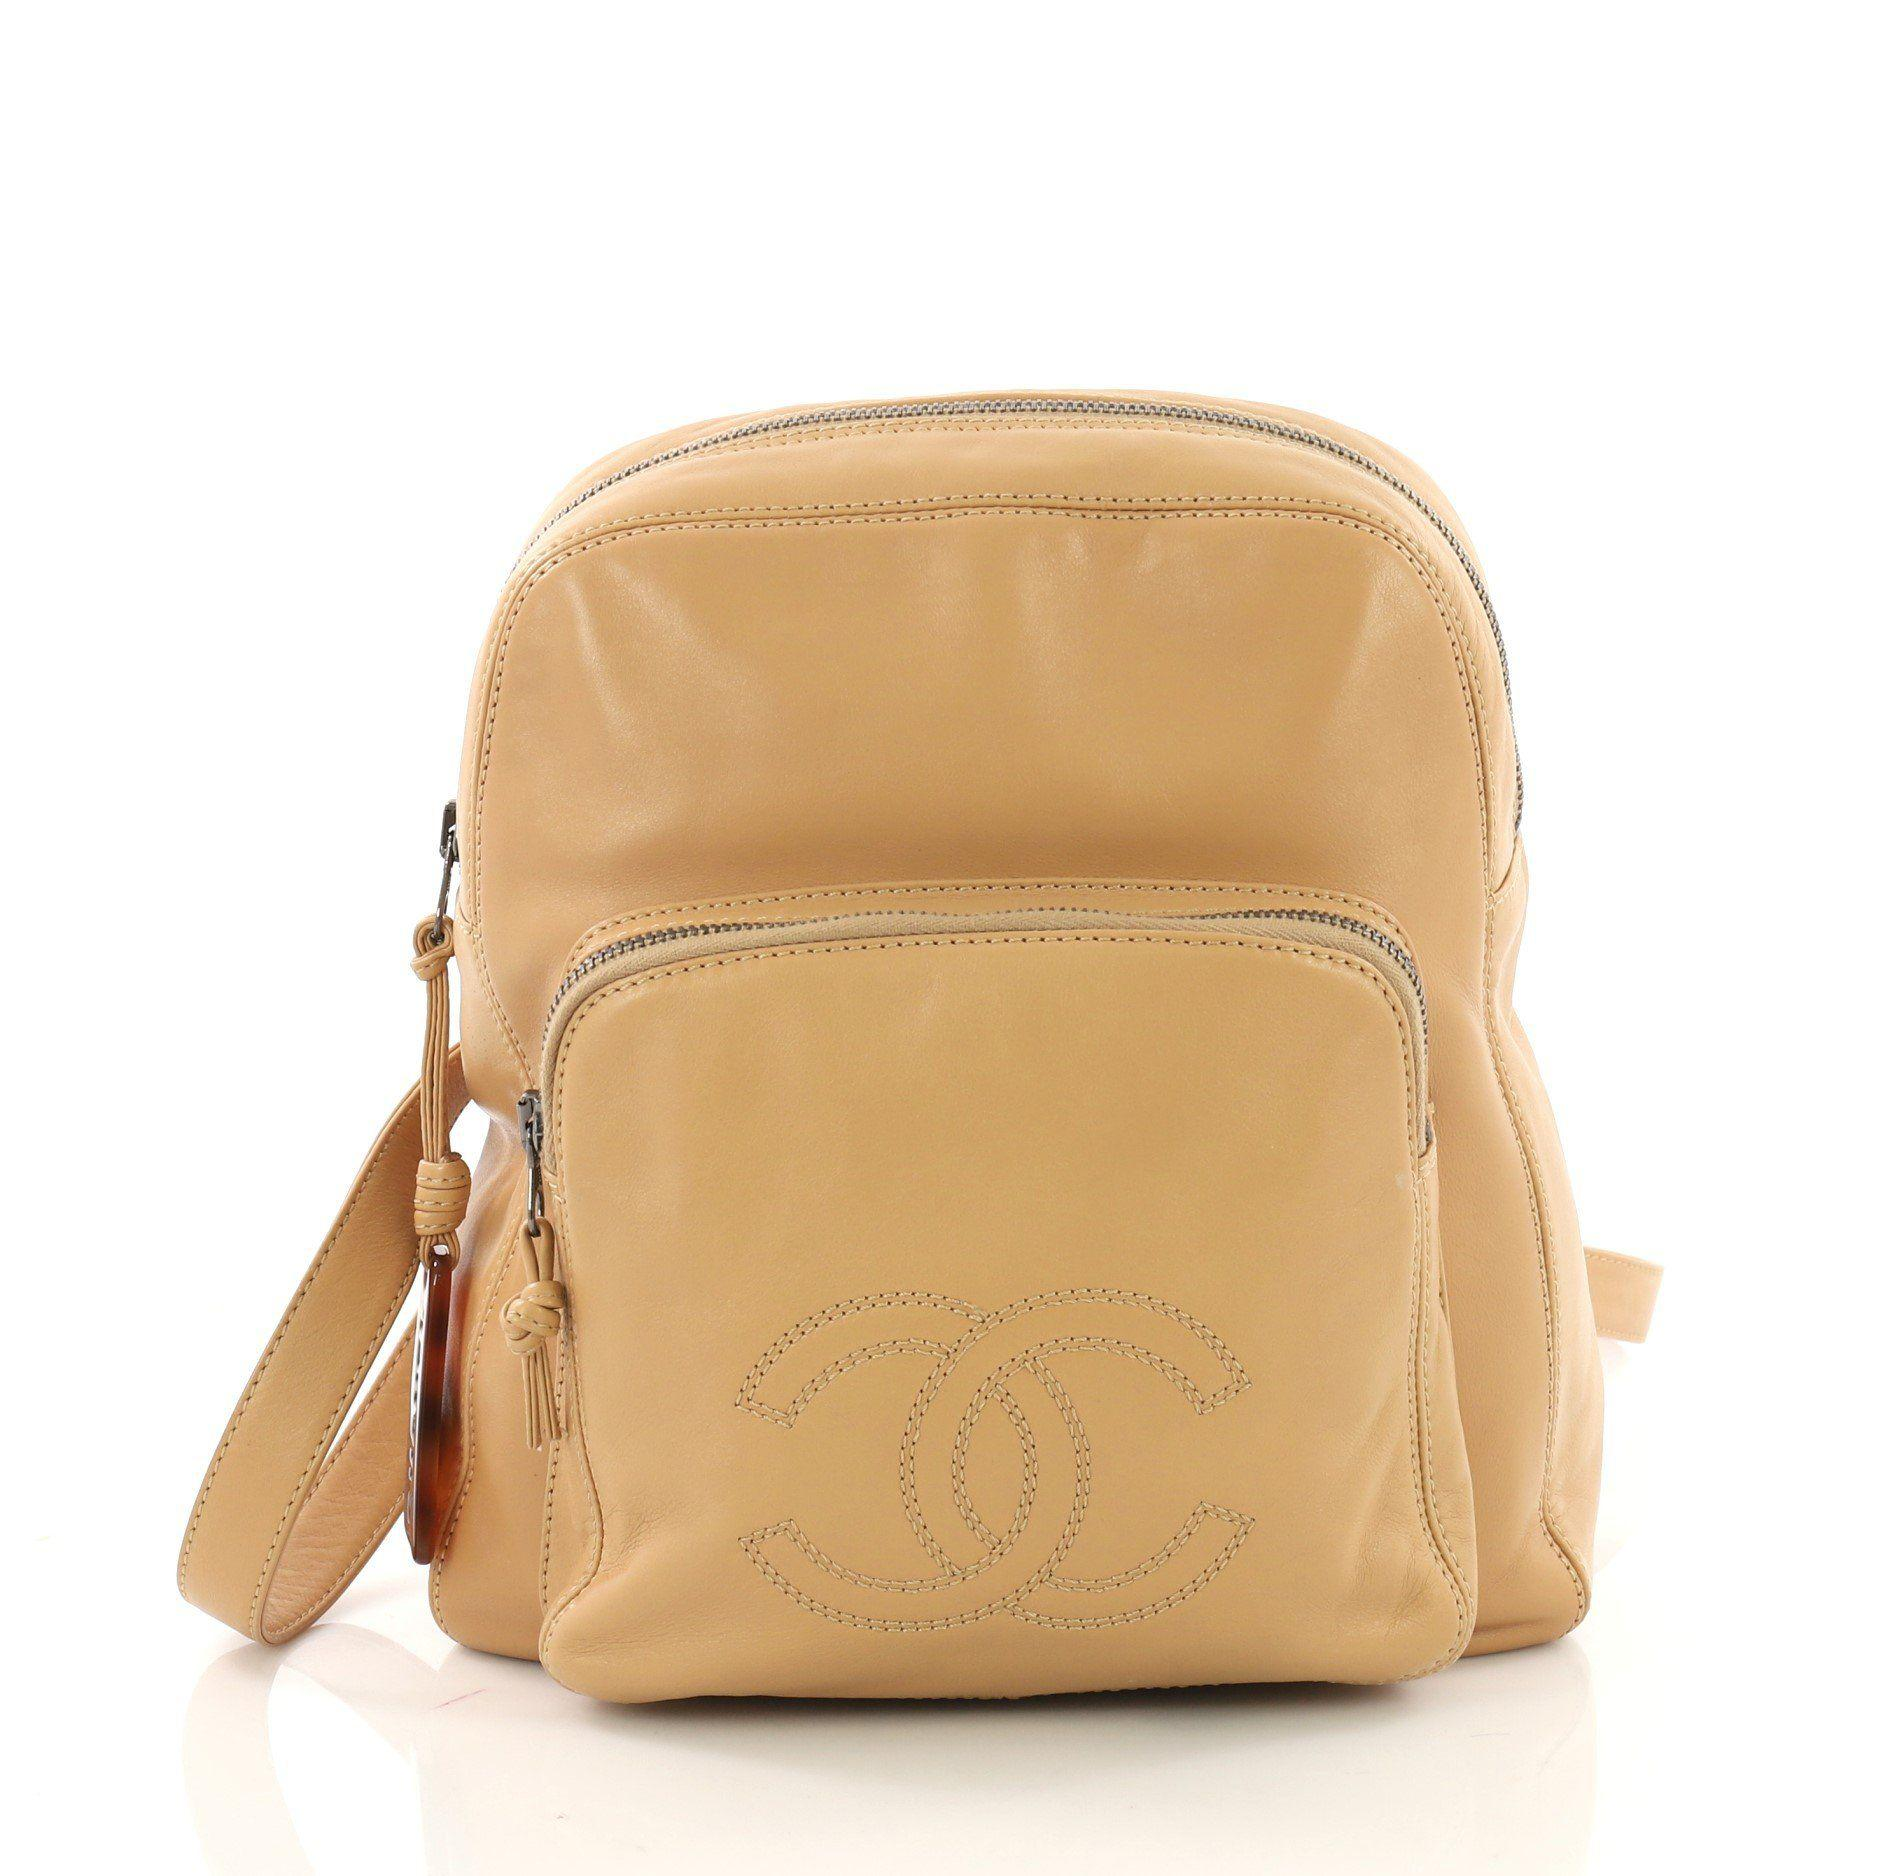 4791a2e874967c Lyst - Chanel Pre Owned Vintage Cc Pocket Backpack Leather Medium in ...